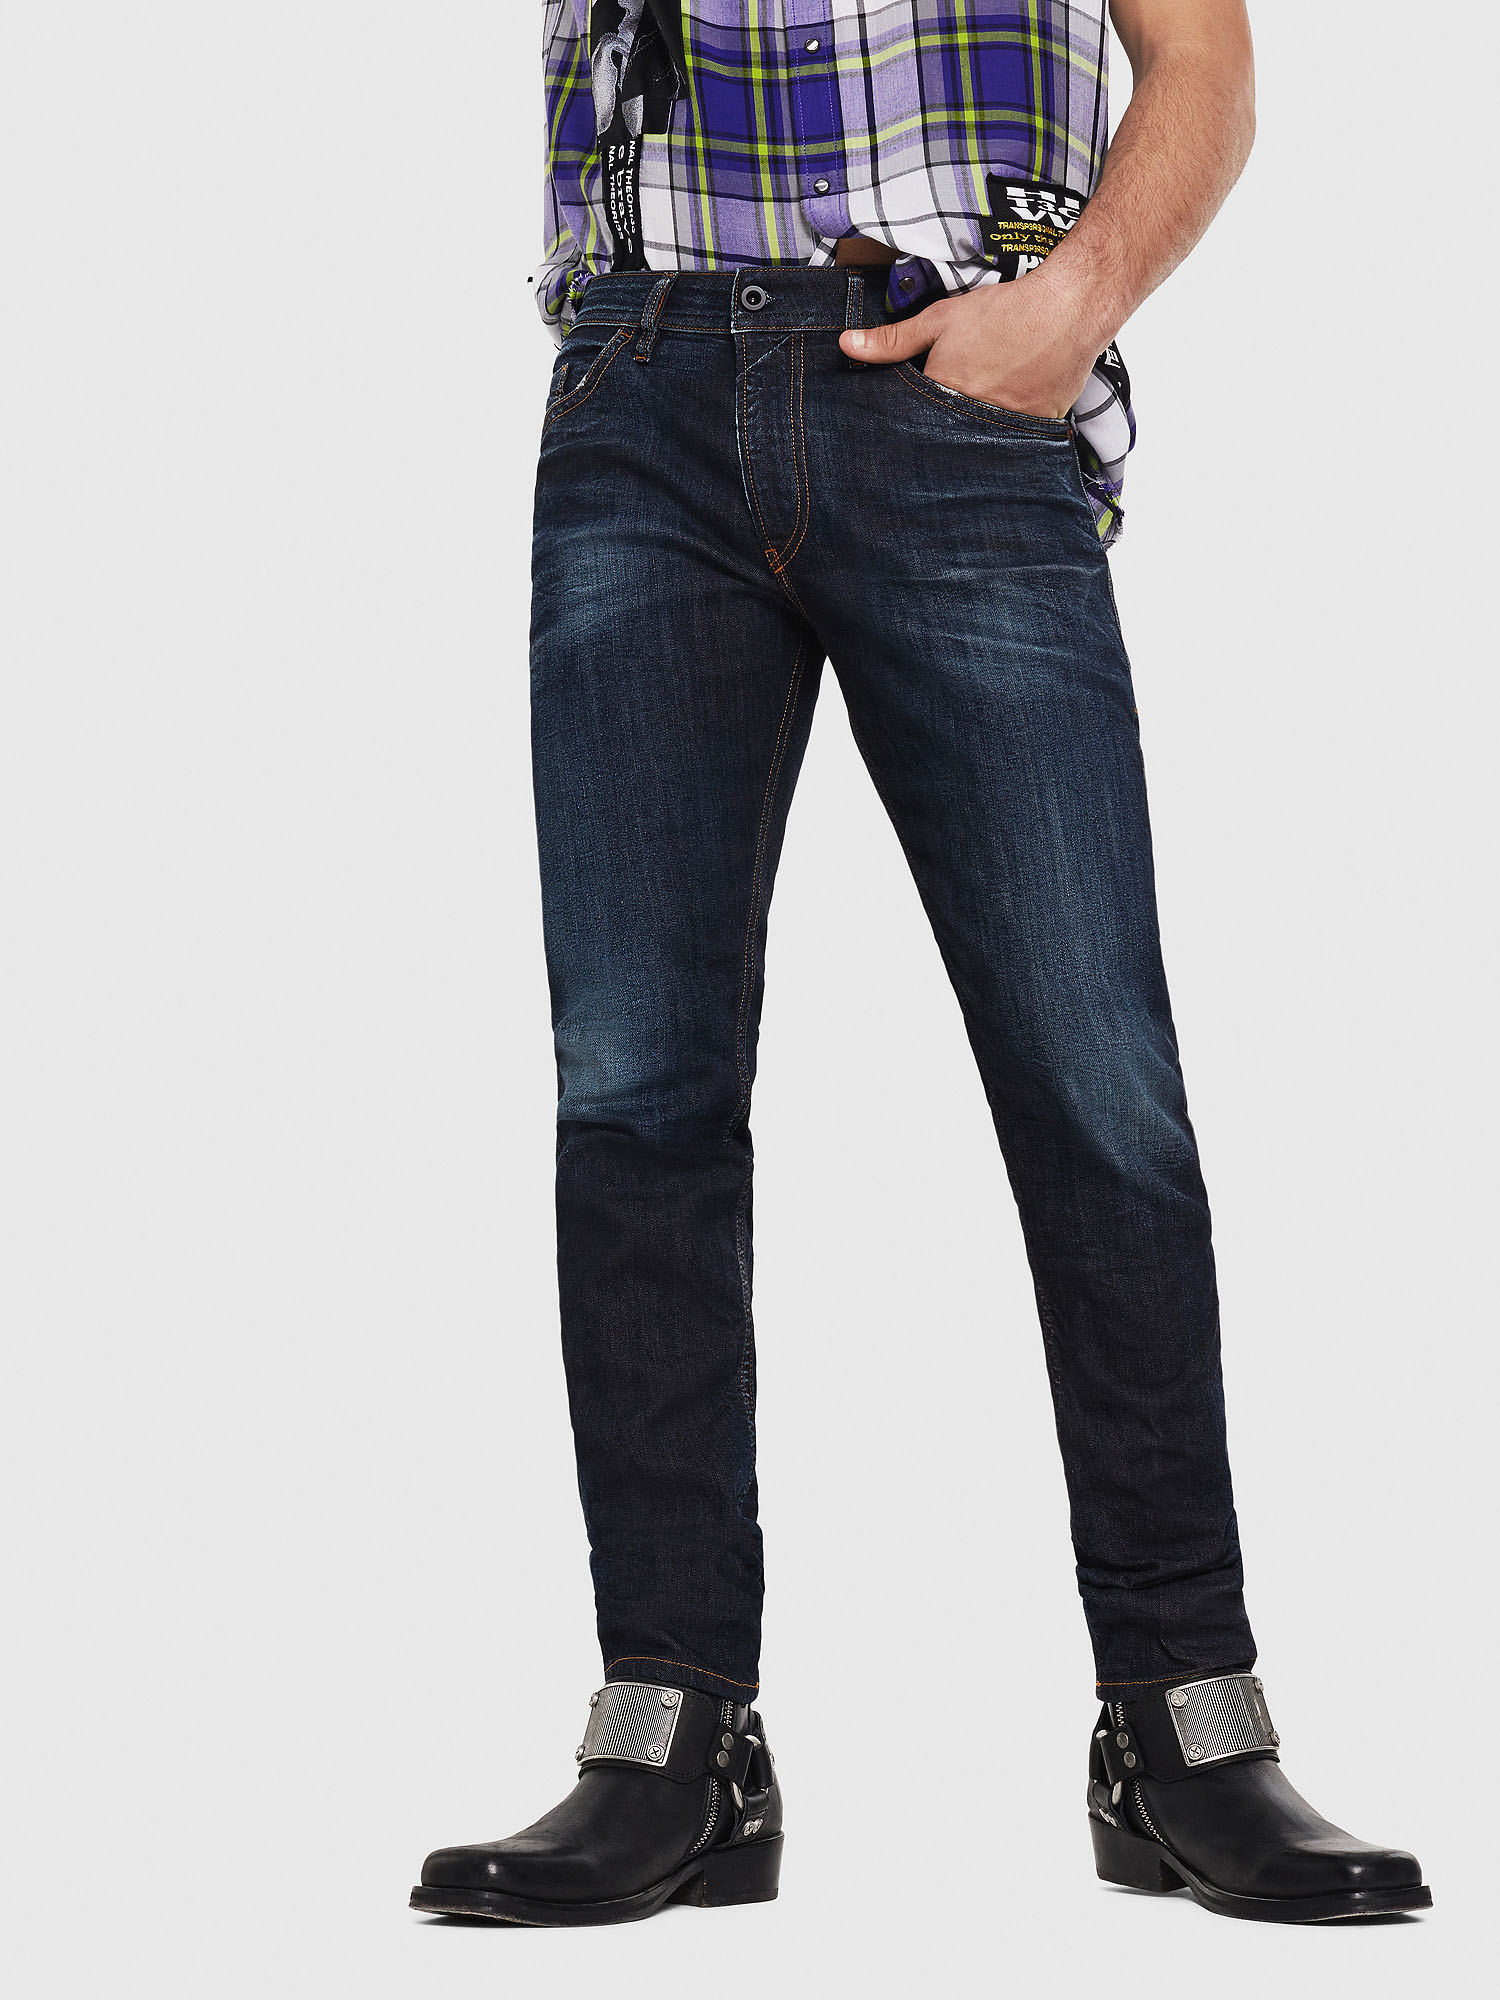 Diesel - Thommer 081AT,  - Jeans - Image 1